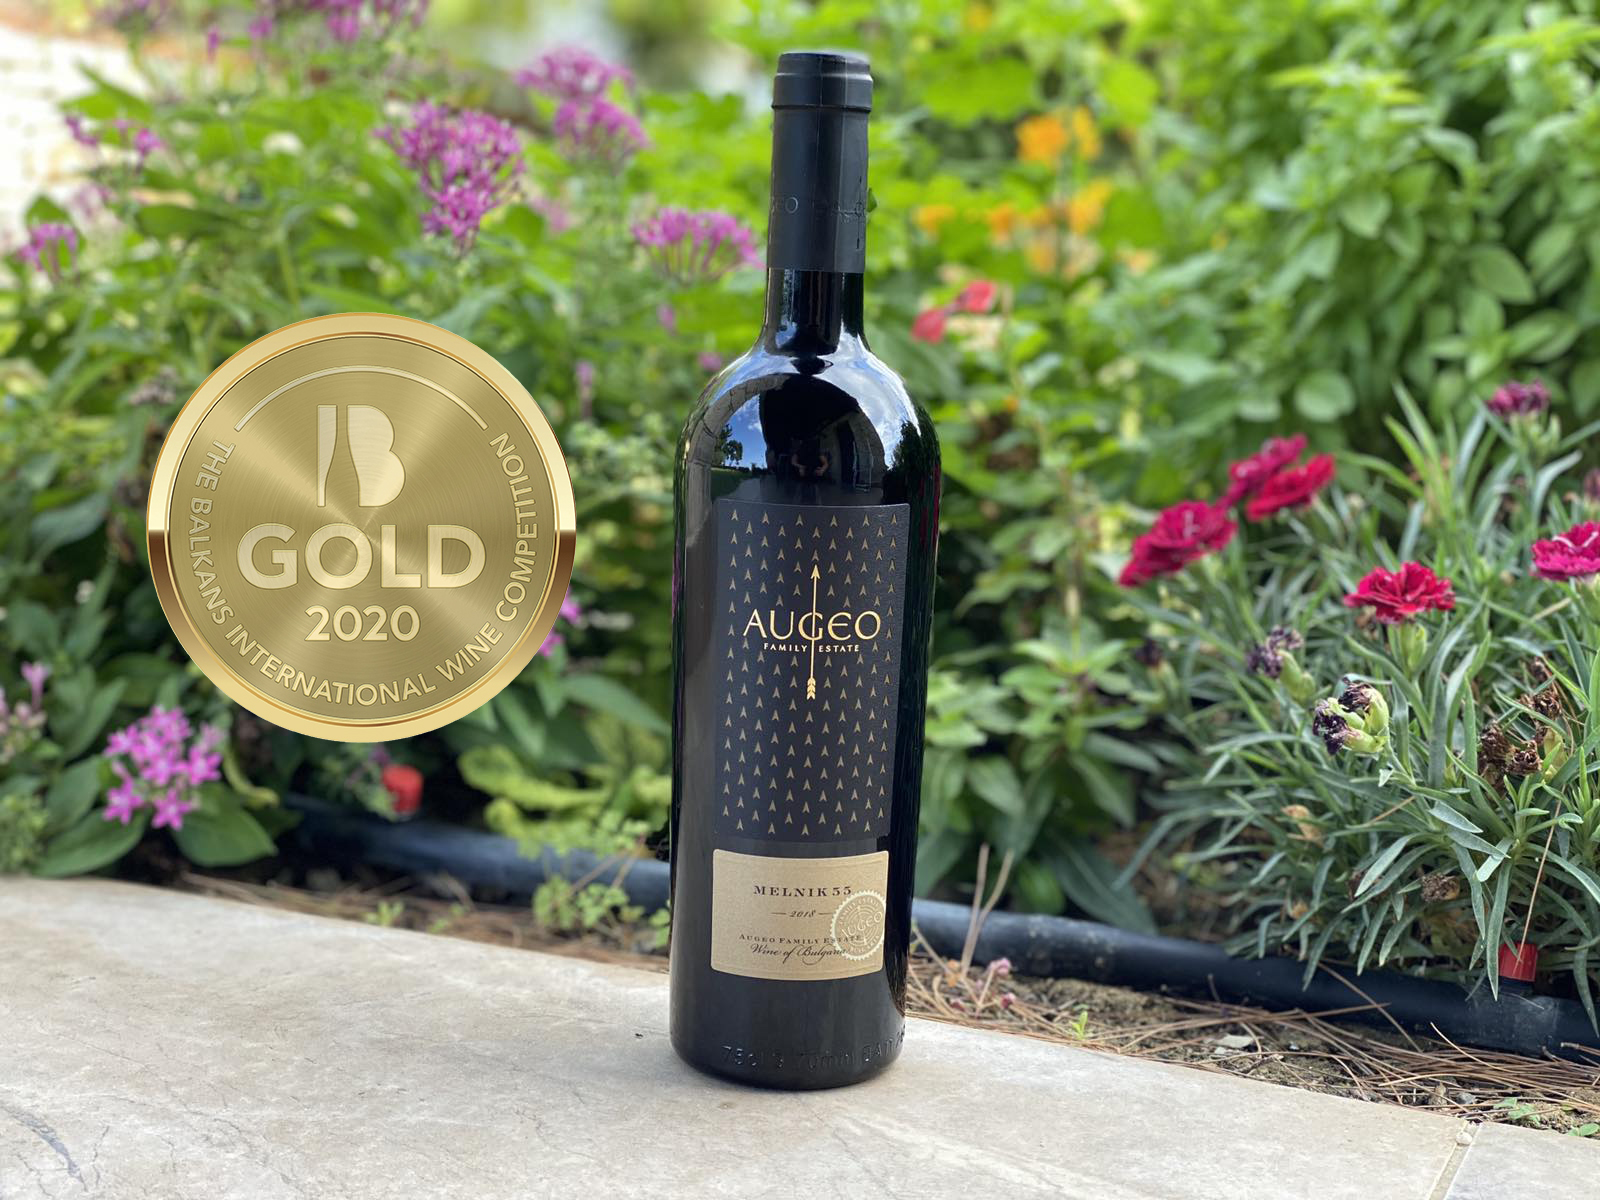 Augeo Family Estate with a gold medal at The Balkans International Wine Competition 2020